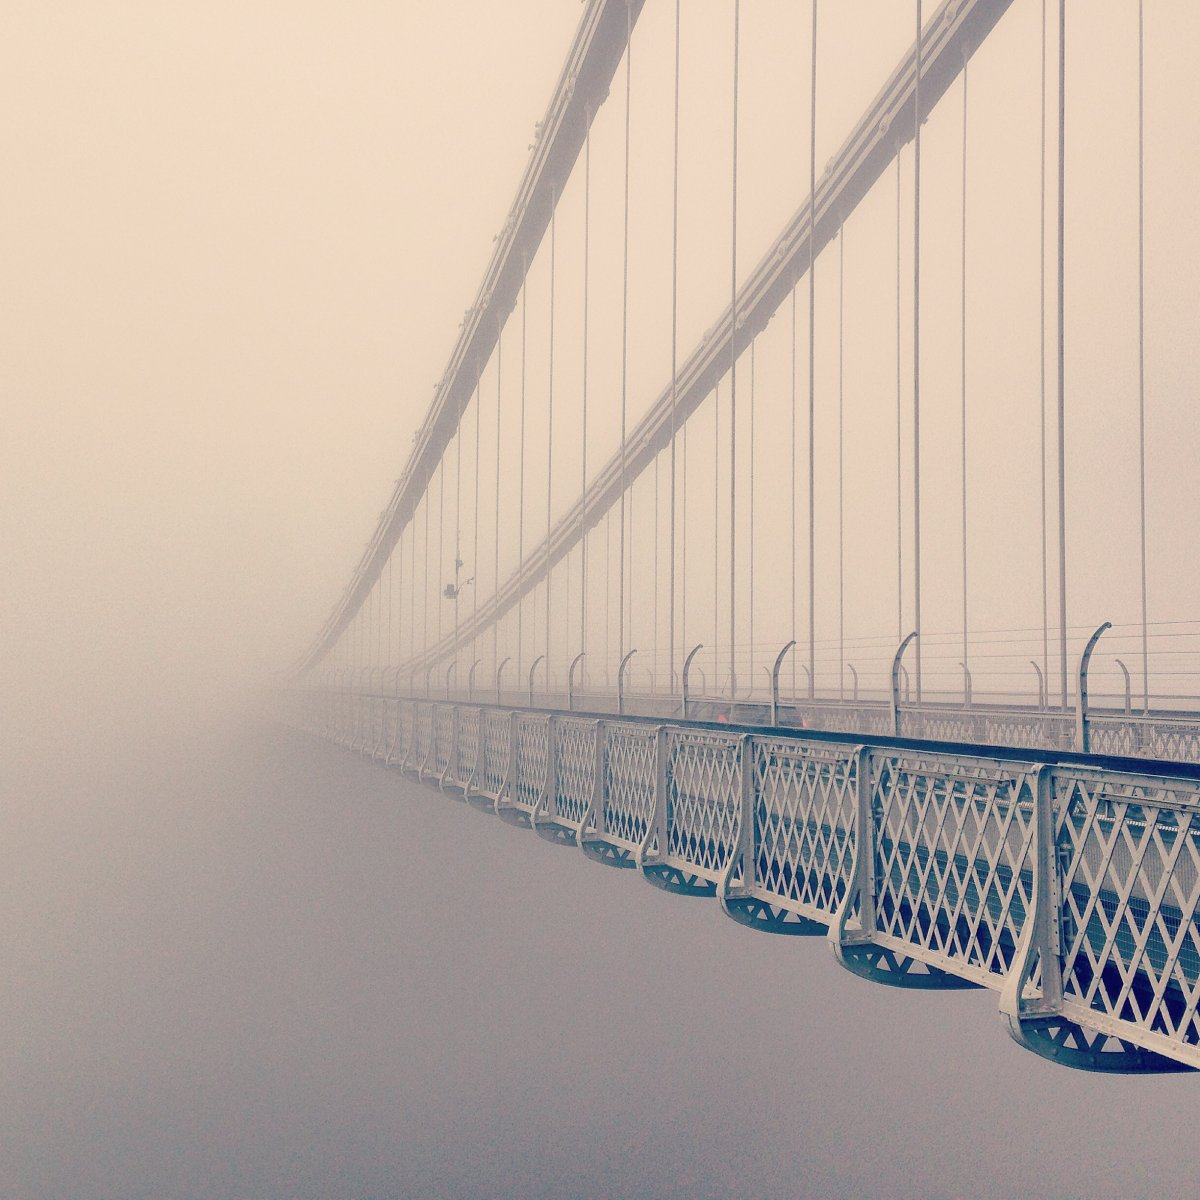 a-bridge-disappears-into-the-fog-in-this-photo-by-helen-whelton-of-the-uk